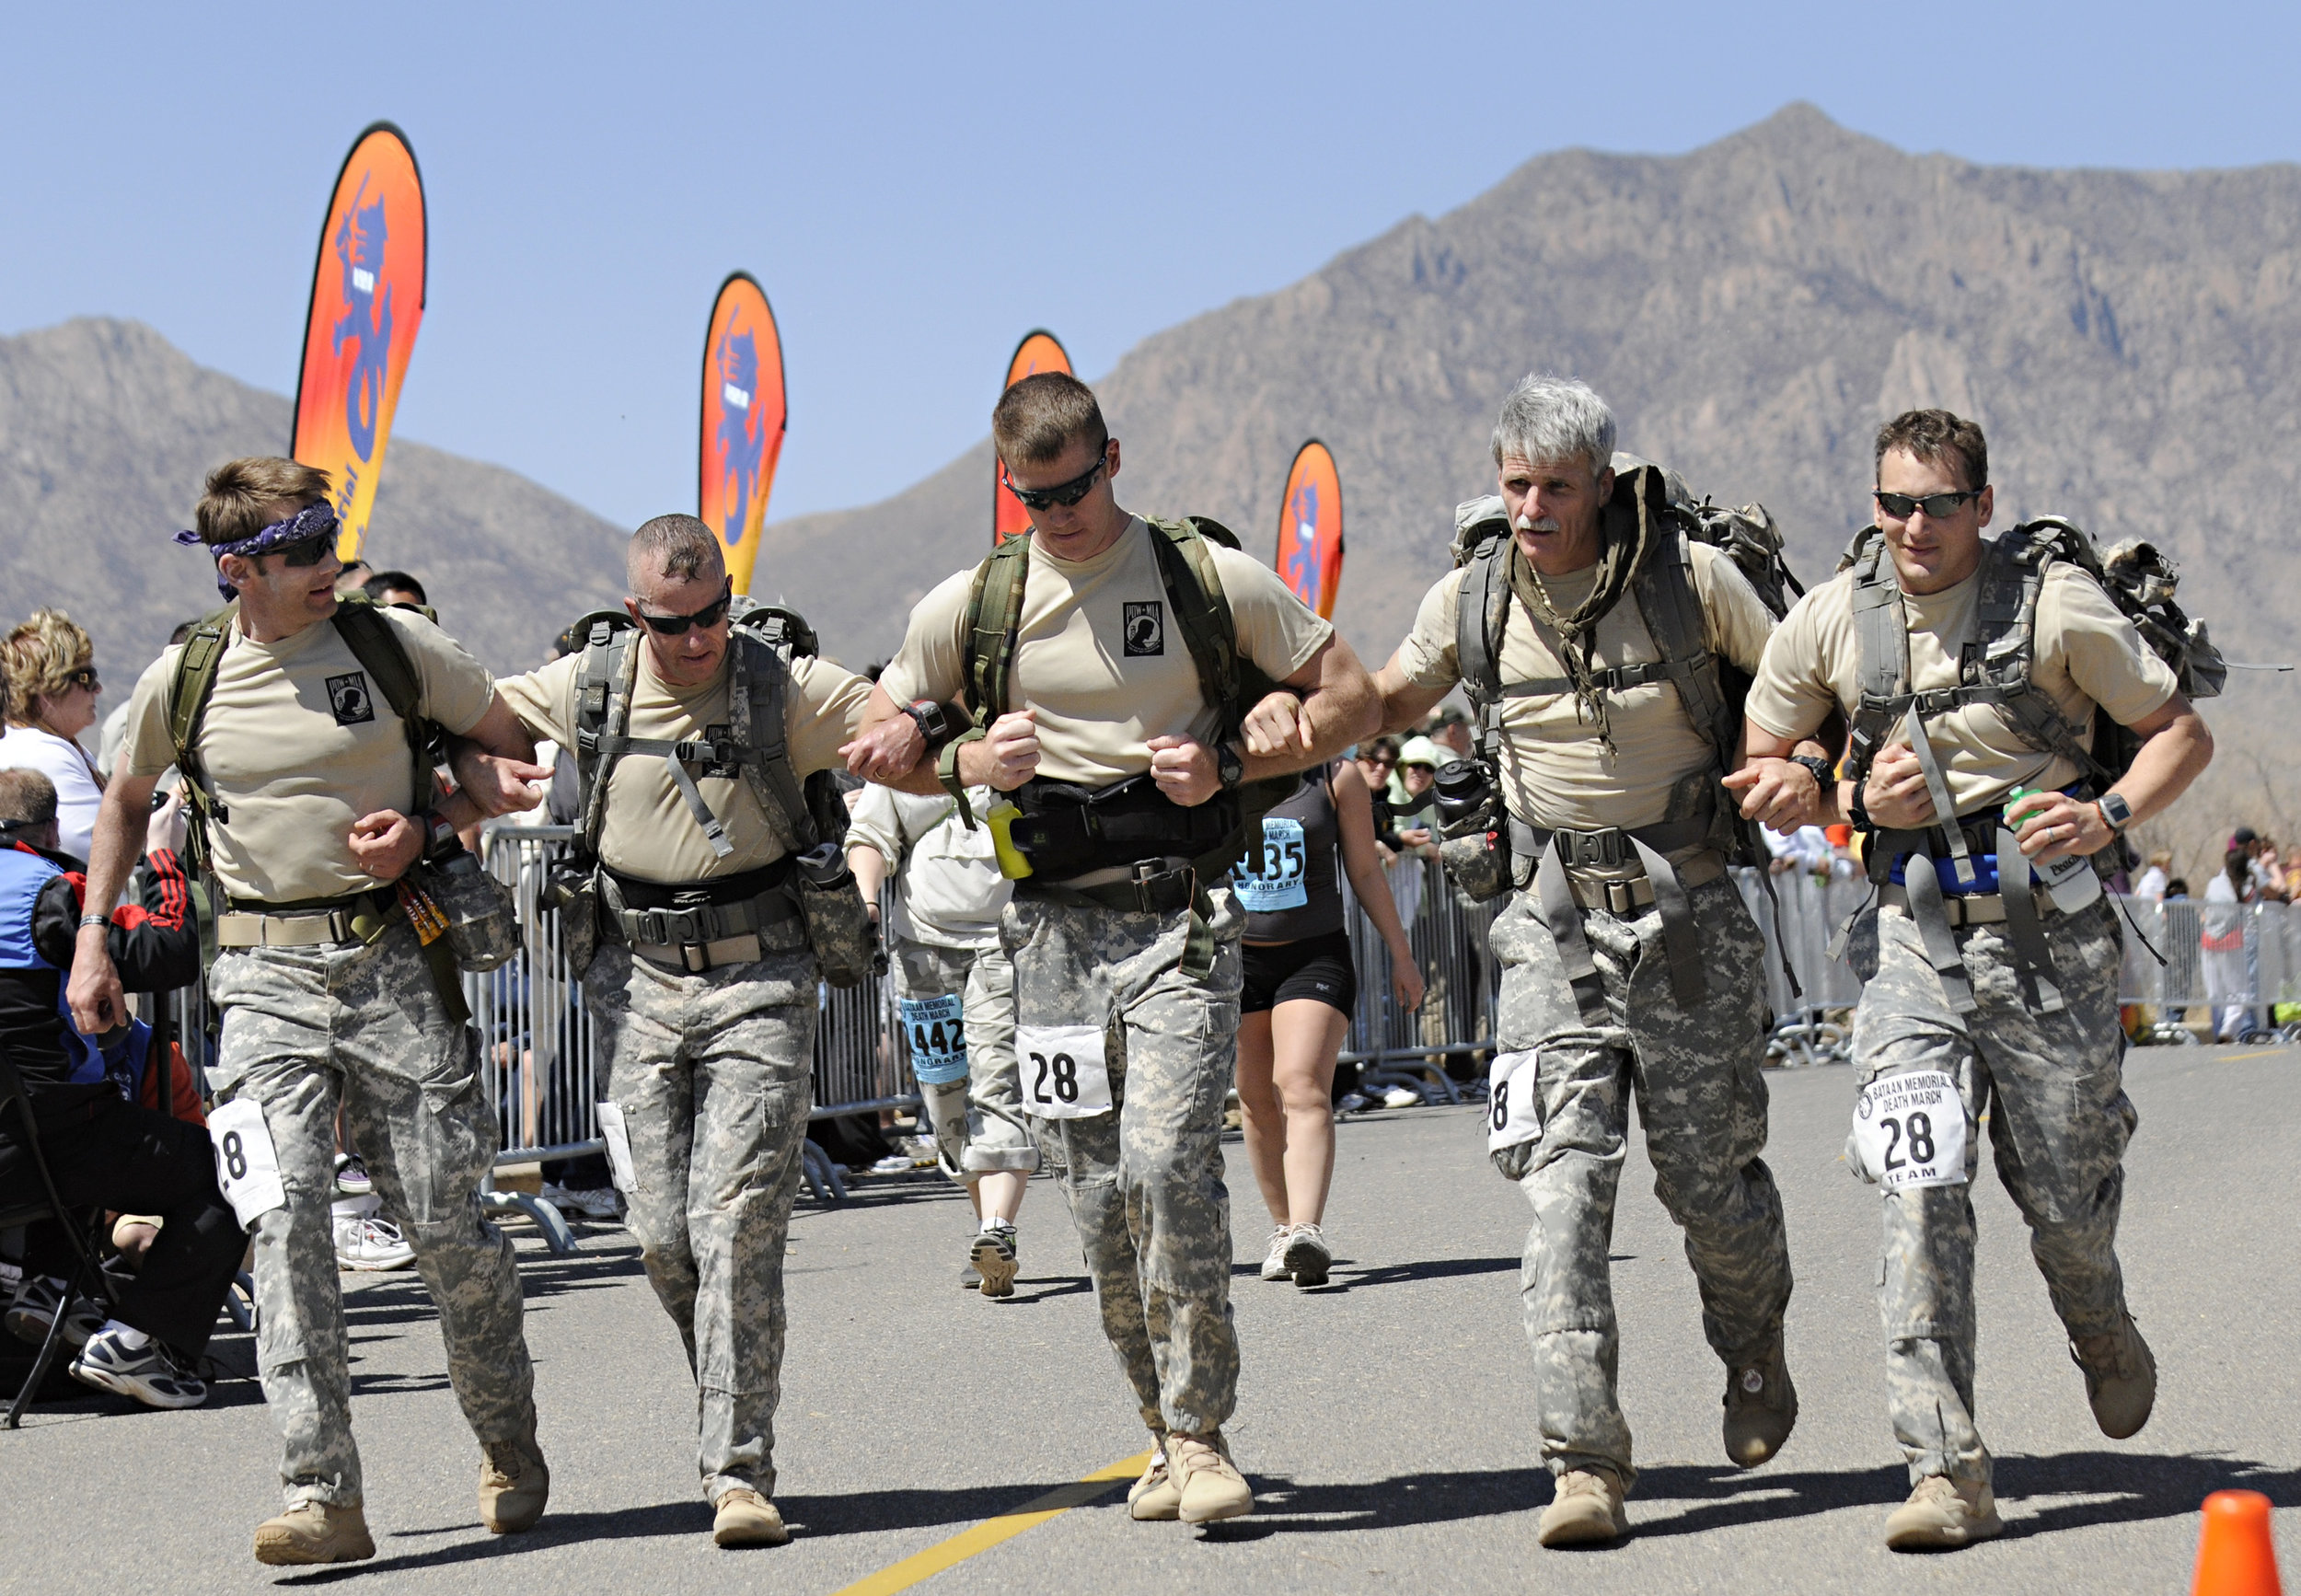 A team prepares to cross the finish line of their 26.2-mile run arm in arm during the 22nd Annual Bataan Memorial Death March at White Sands Missile Range, Sunday, March 27, 2011. (Morgan Petroski/Albuquerque Journal)